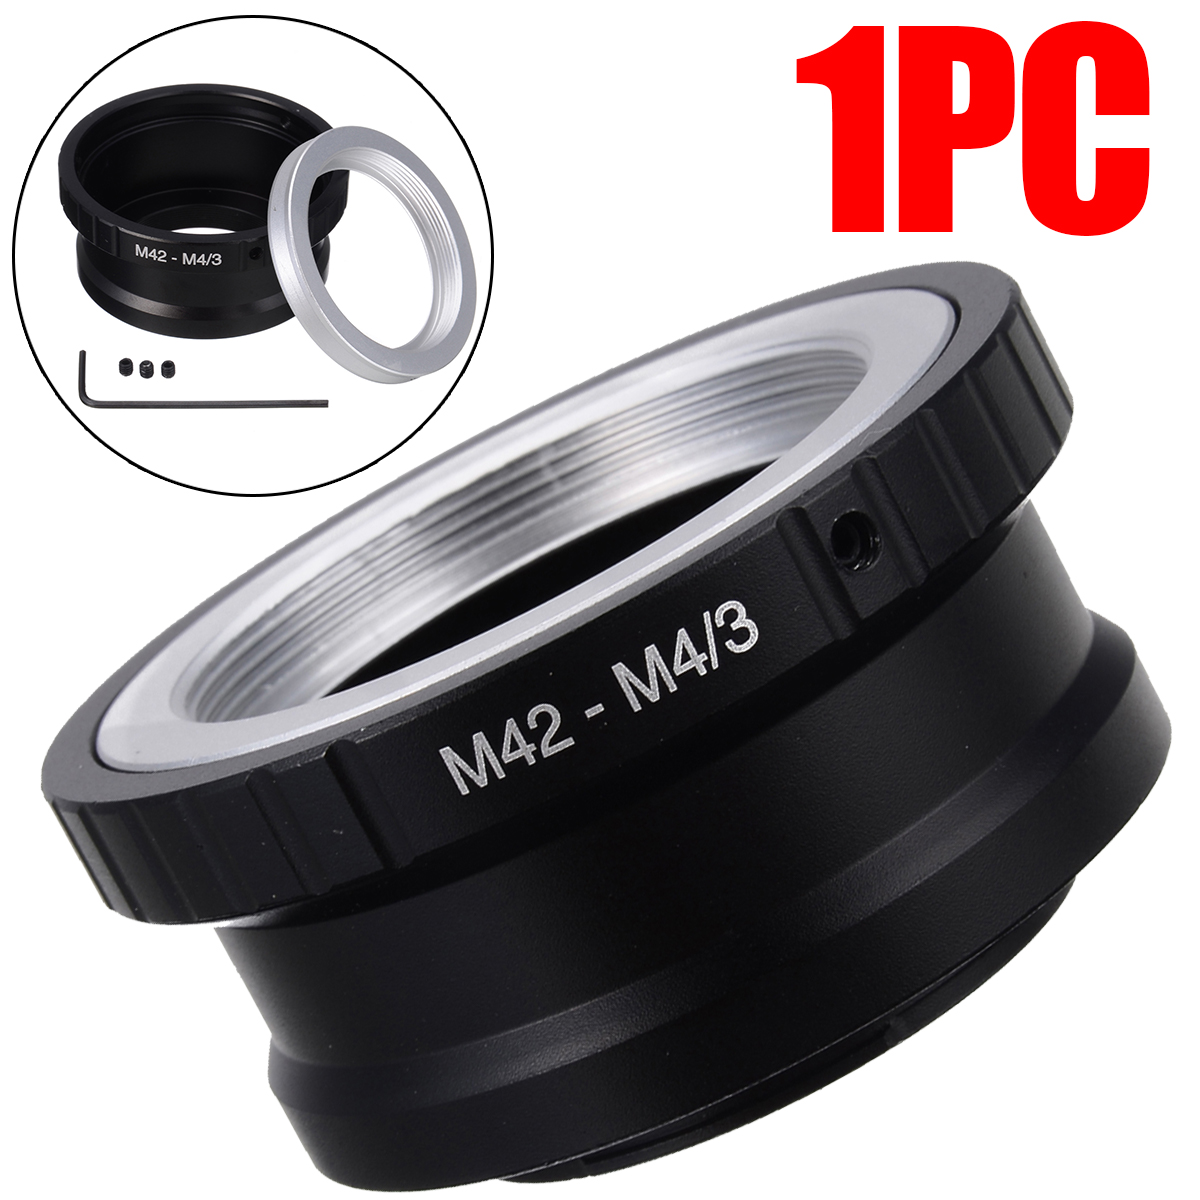 Mayitr 1PC Camera Lens Adapter Ring <font><b>M42</b></font> Lens To An Micro 4/3 <font><b>M4/3</b></font> MFT Mount For O-lympus Pen for Panasonic Lumix G image